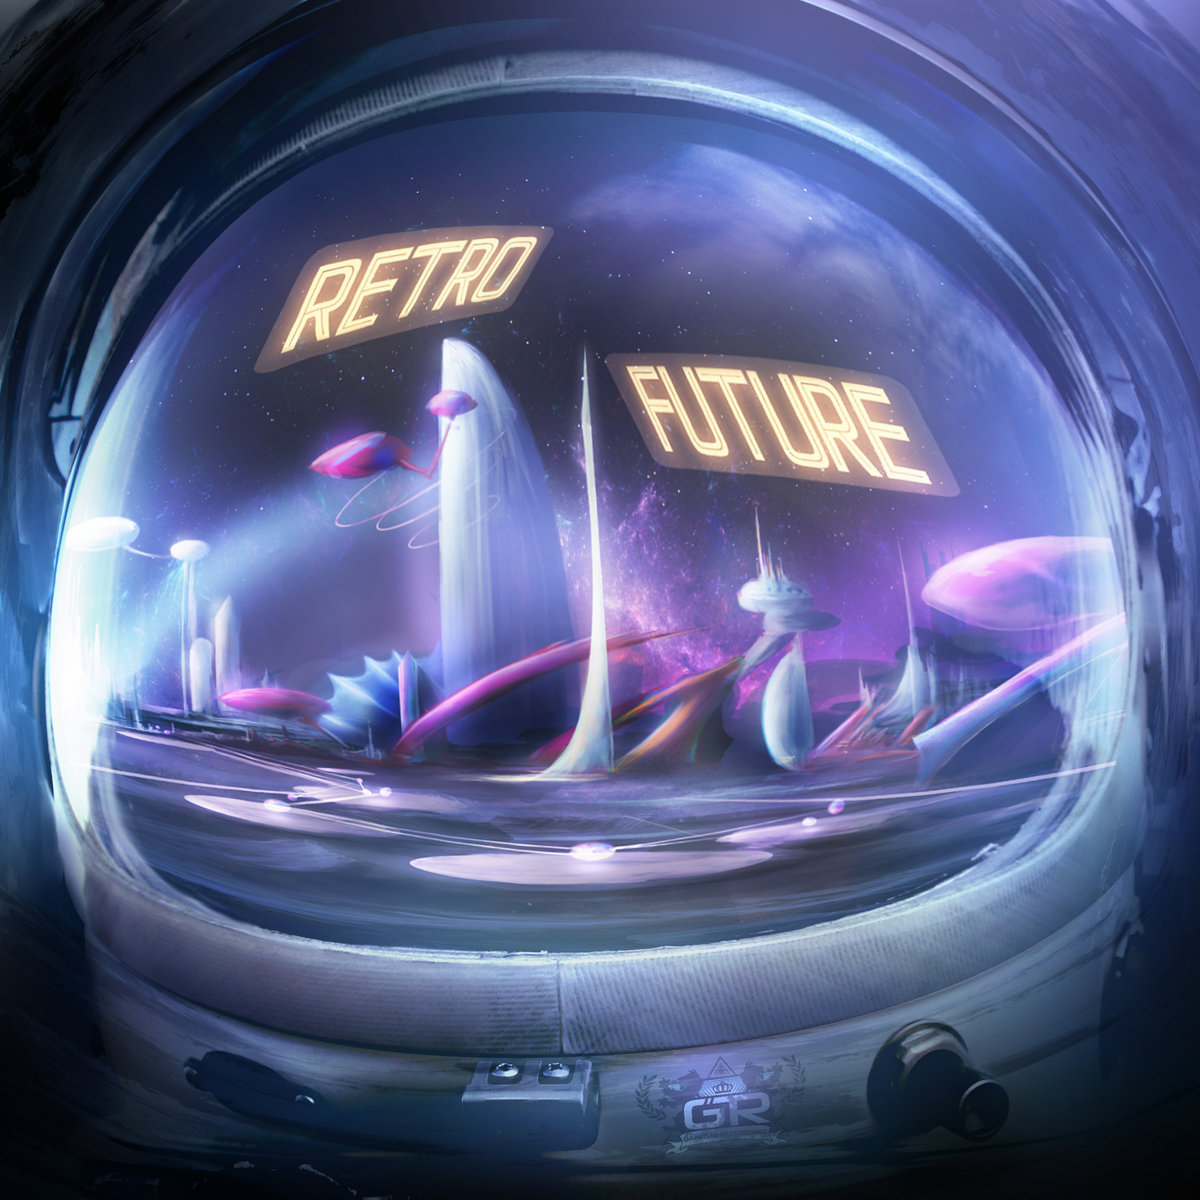 Retro future gravitas recordings for 1234 get on the dance floor mp3 songs free download